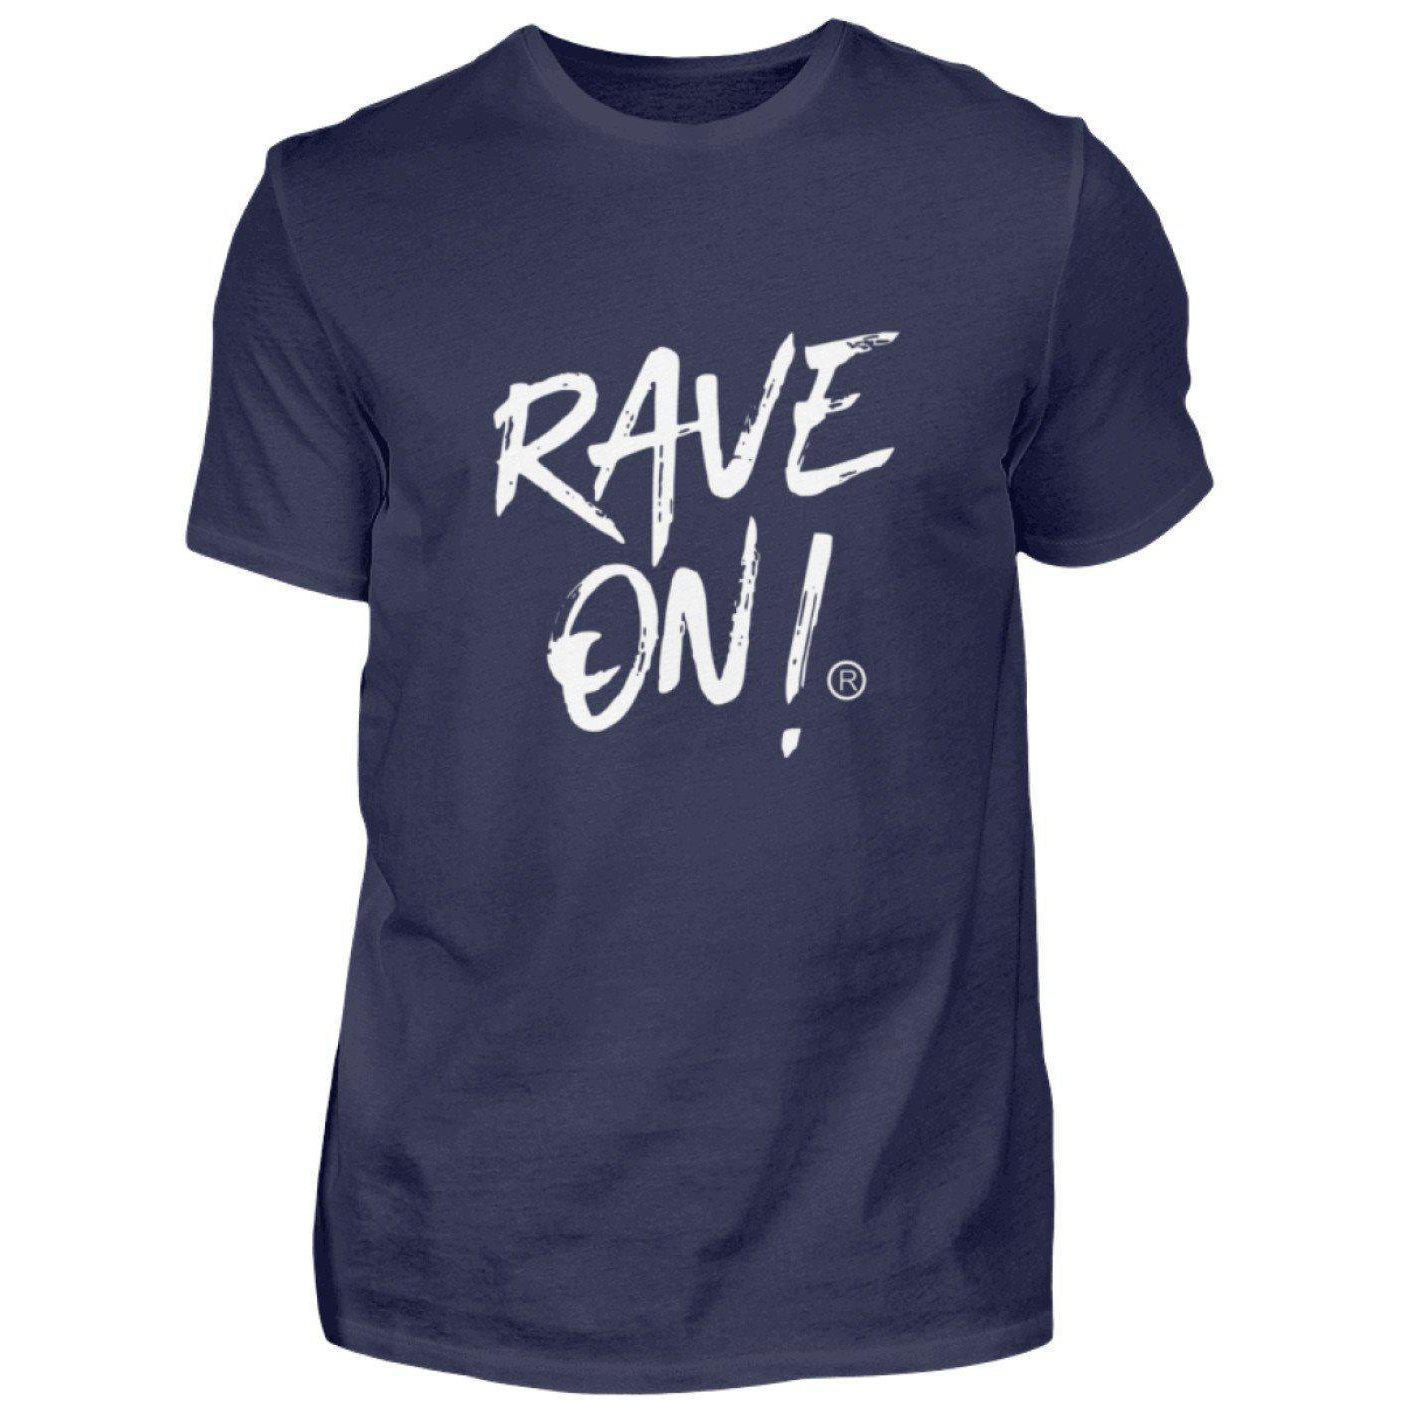 RAVE ON!® Black Collection - Men's Shirt Men's Basic T-Shirt Dark-Blue / S - Rave On!® the club & techno scene shop for cool young fashion streetwear style & fashion outfits + sexy festival 420 stuff